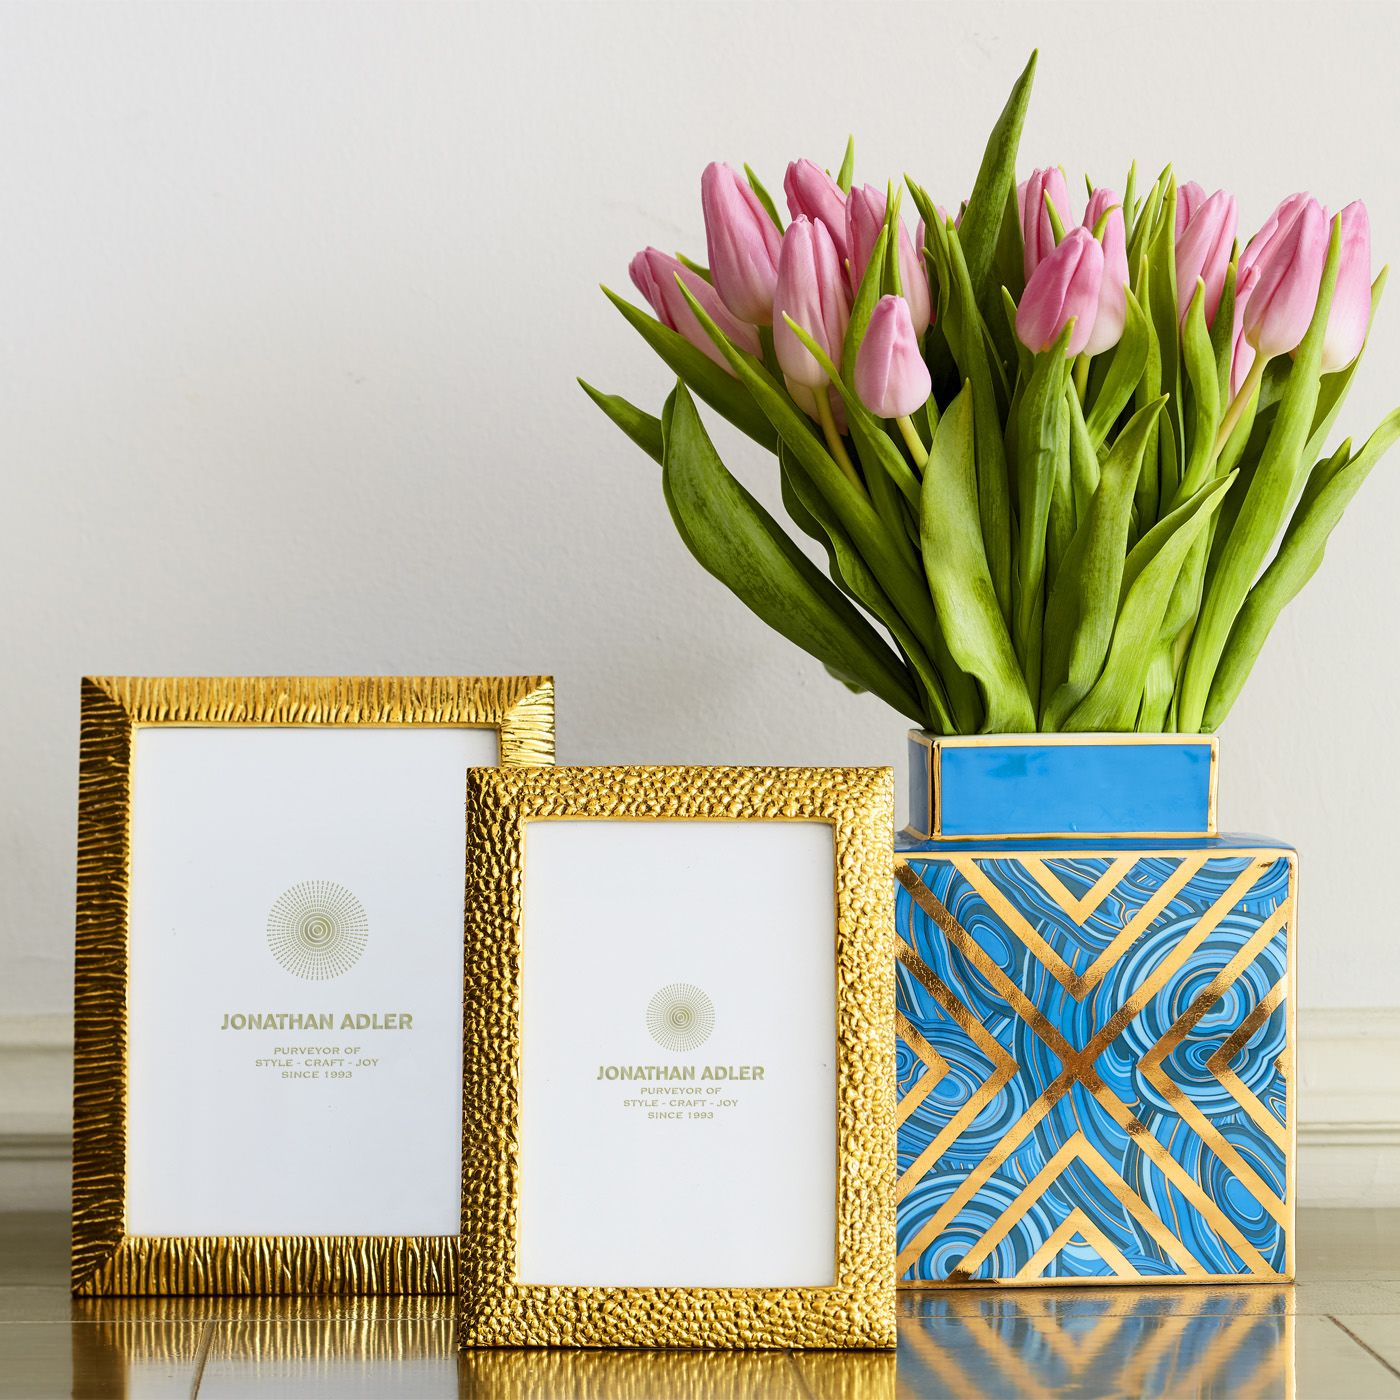 Jonathan Adler Picture Frames - Textured Brass Frame | Gifts for Her ...